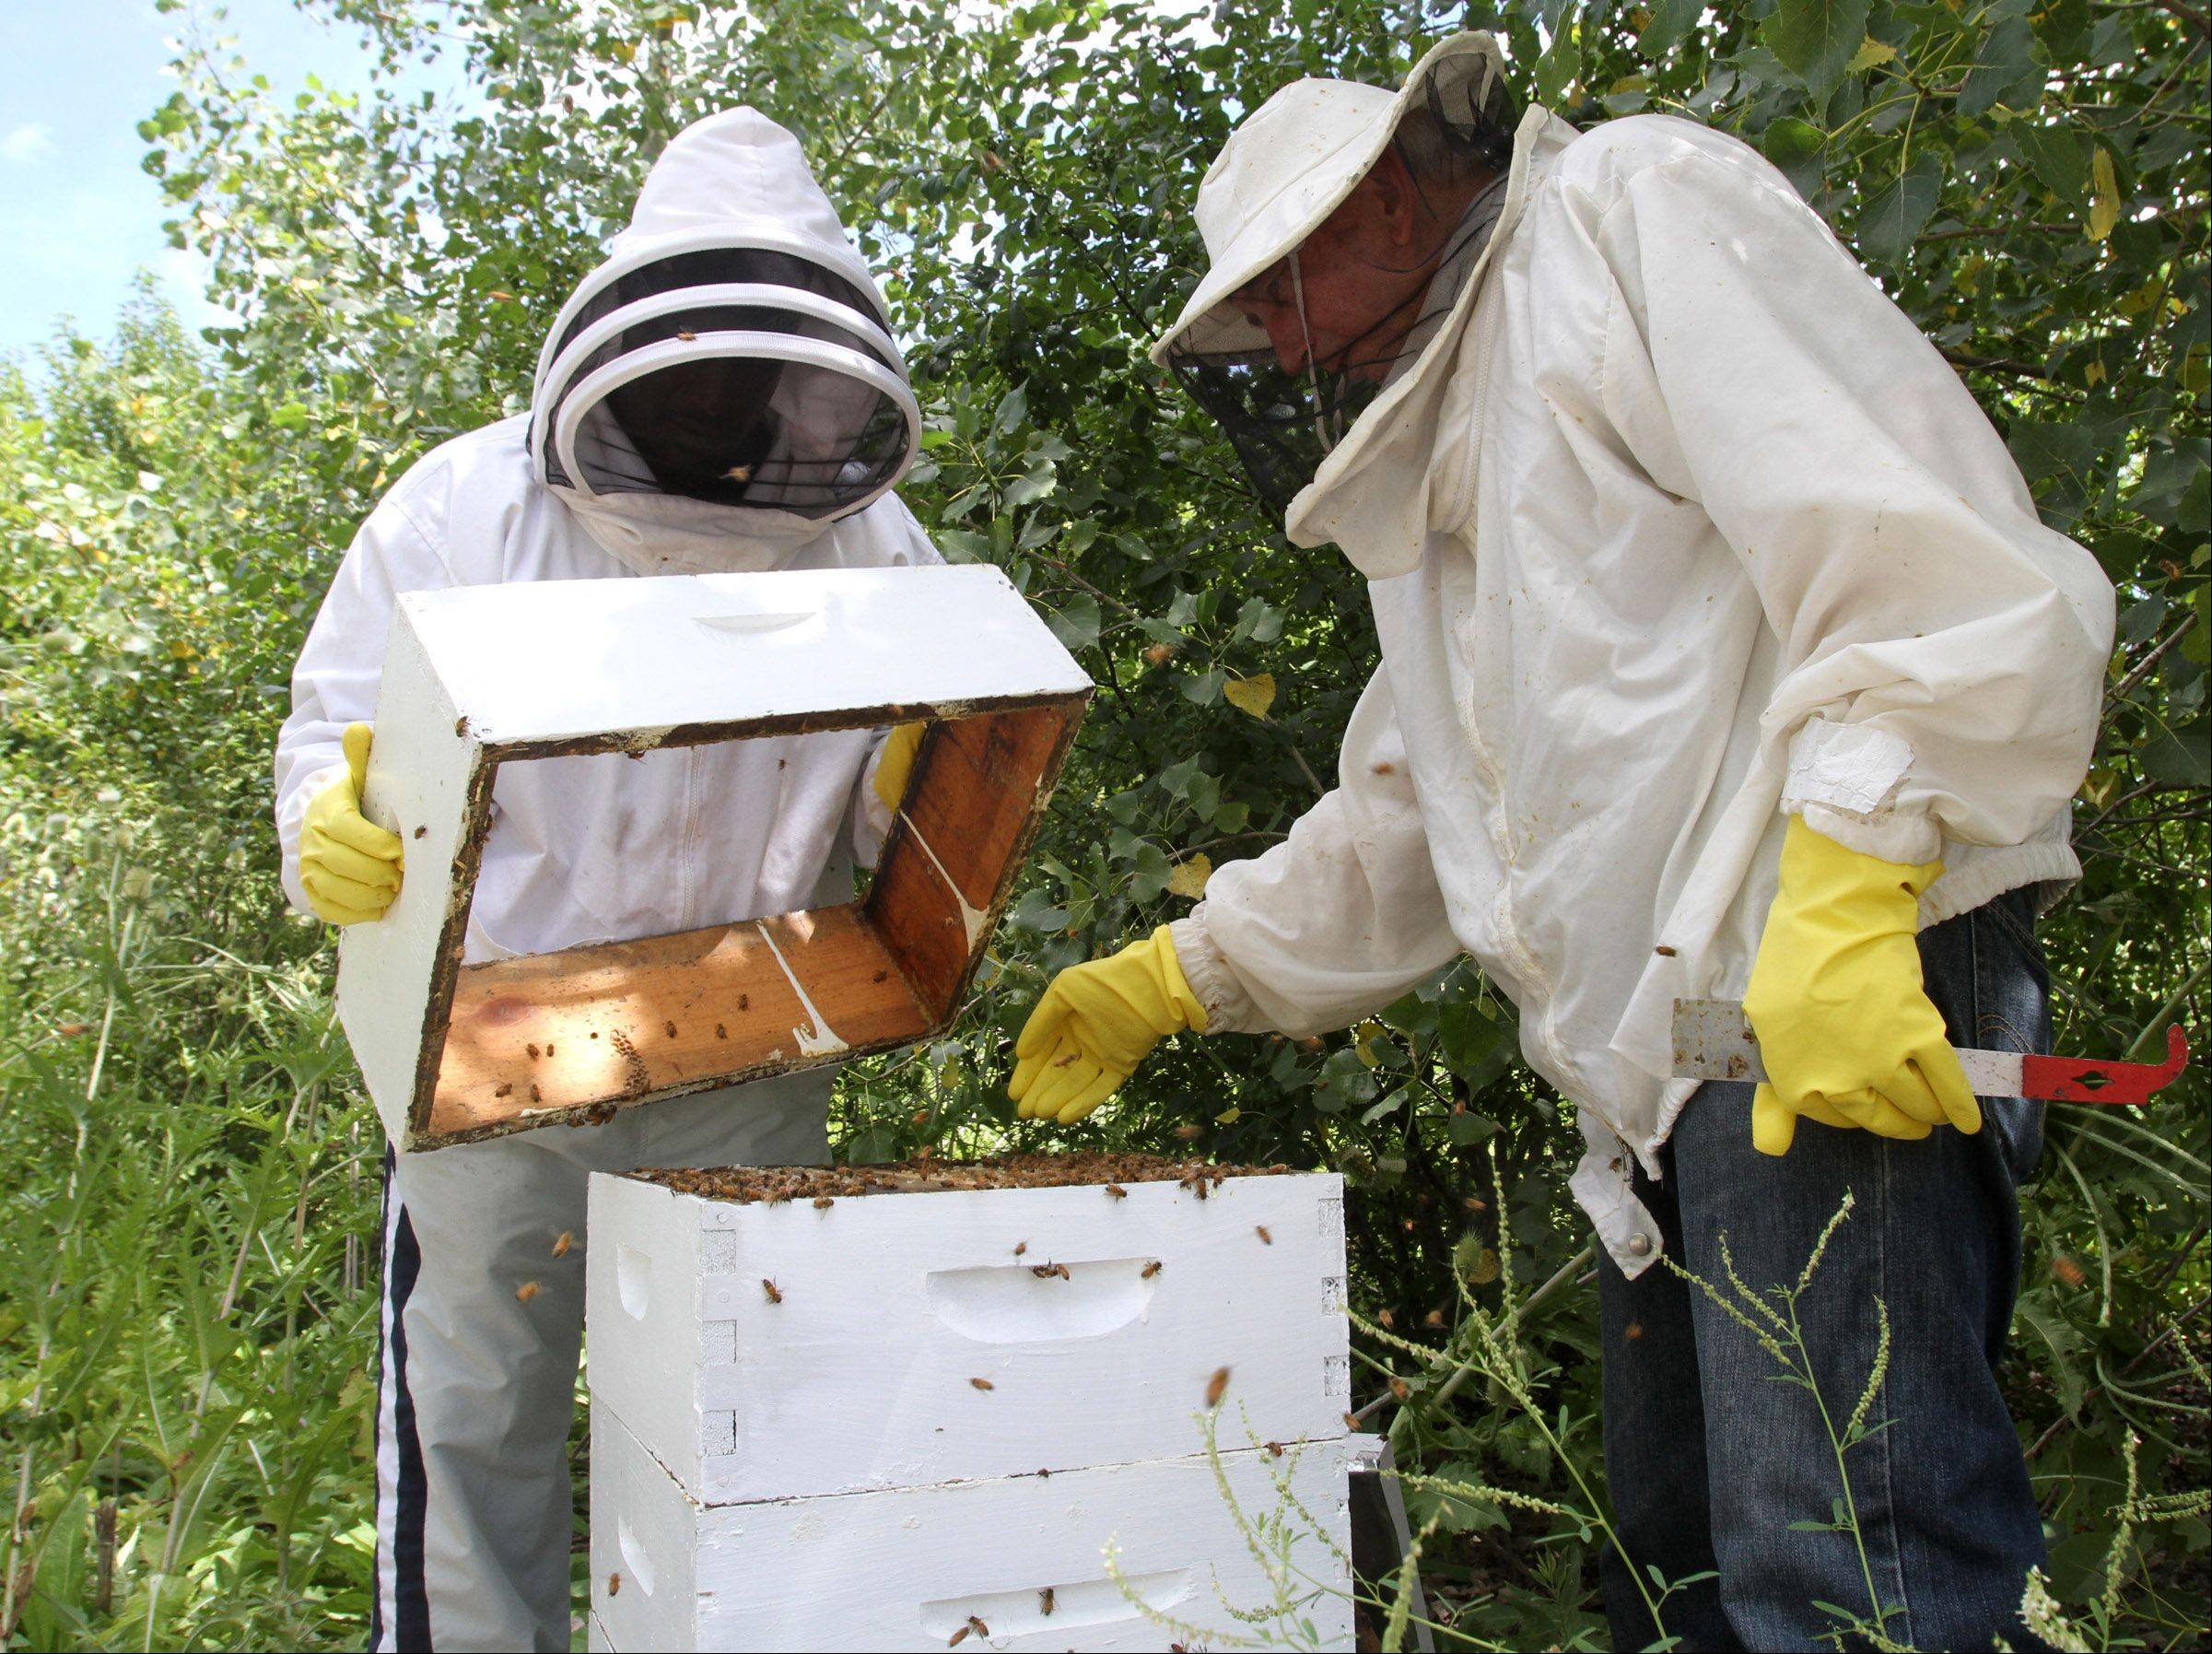 Head beekeeper John Hansen, right, checks a hive with help from Sweet Beginnings team member Curtis Camp.